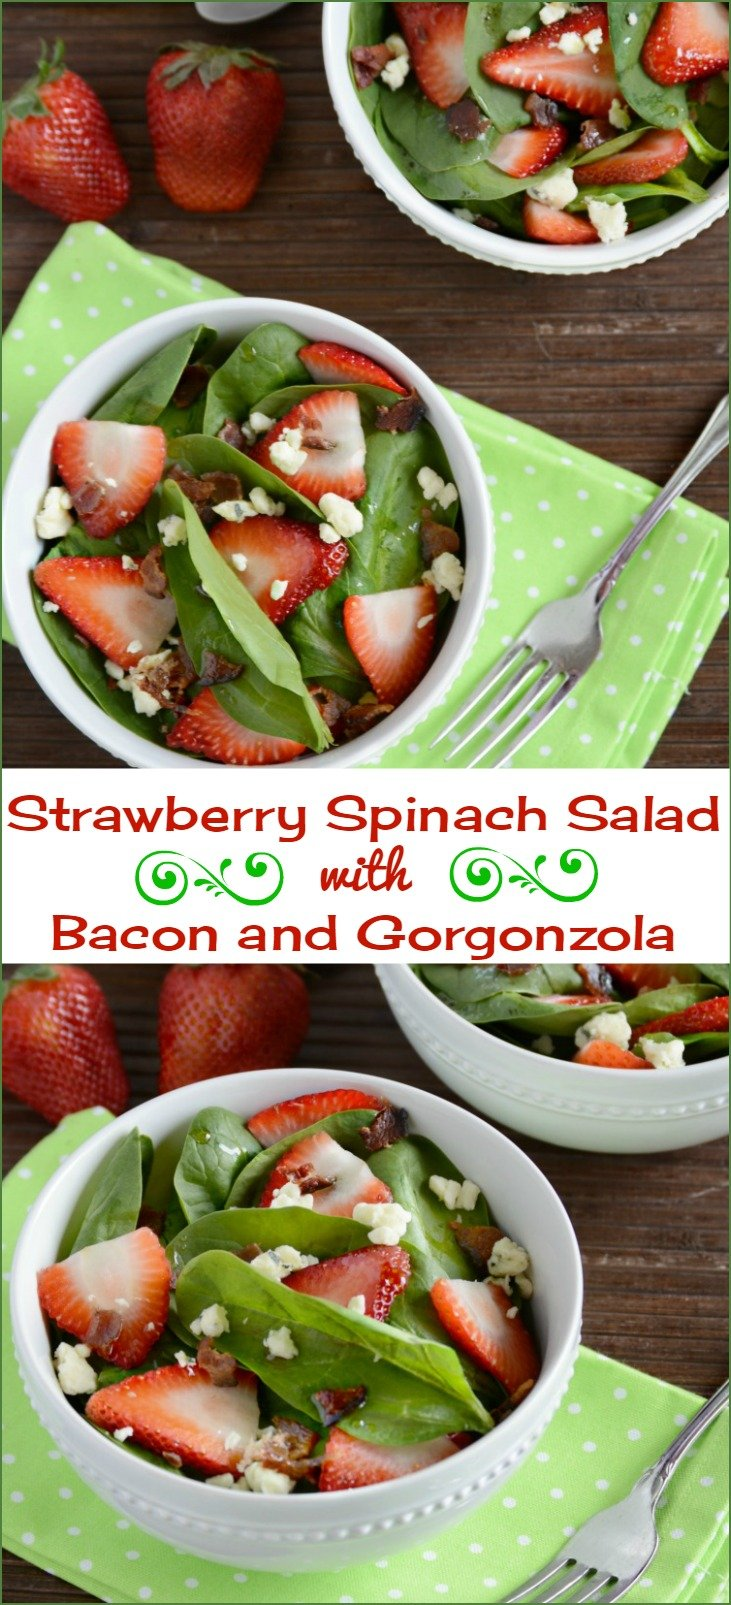 Strawberry Spinach Salad with Bacon and Gorgonzola - Meatloaf and ...